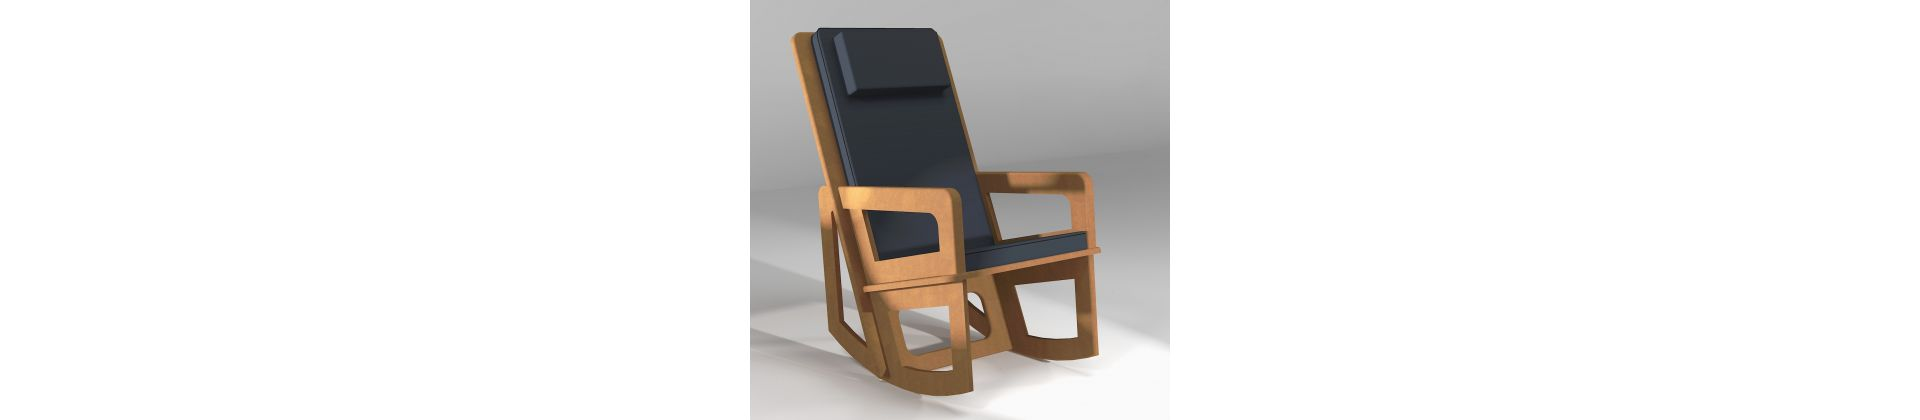 Rocking chair for falling asleep and for the back